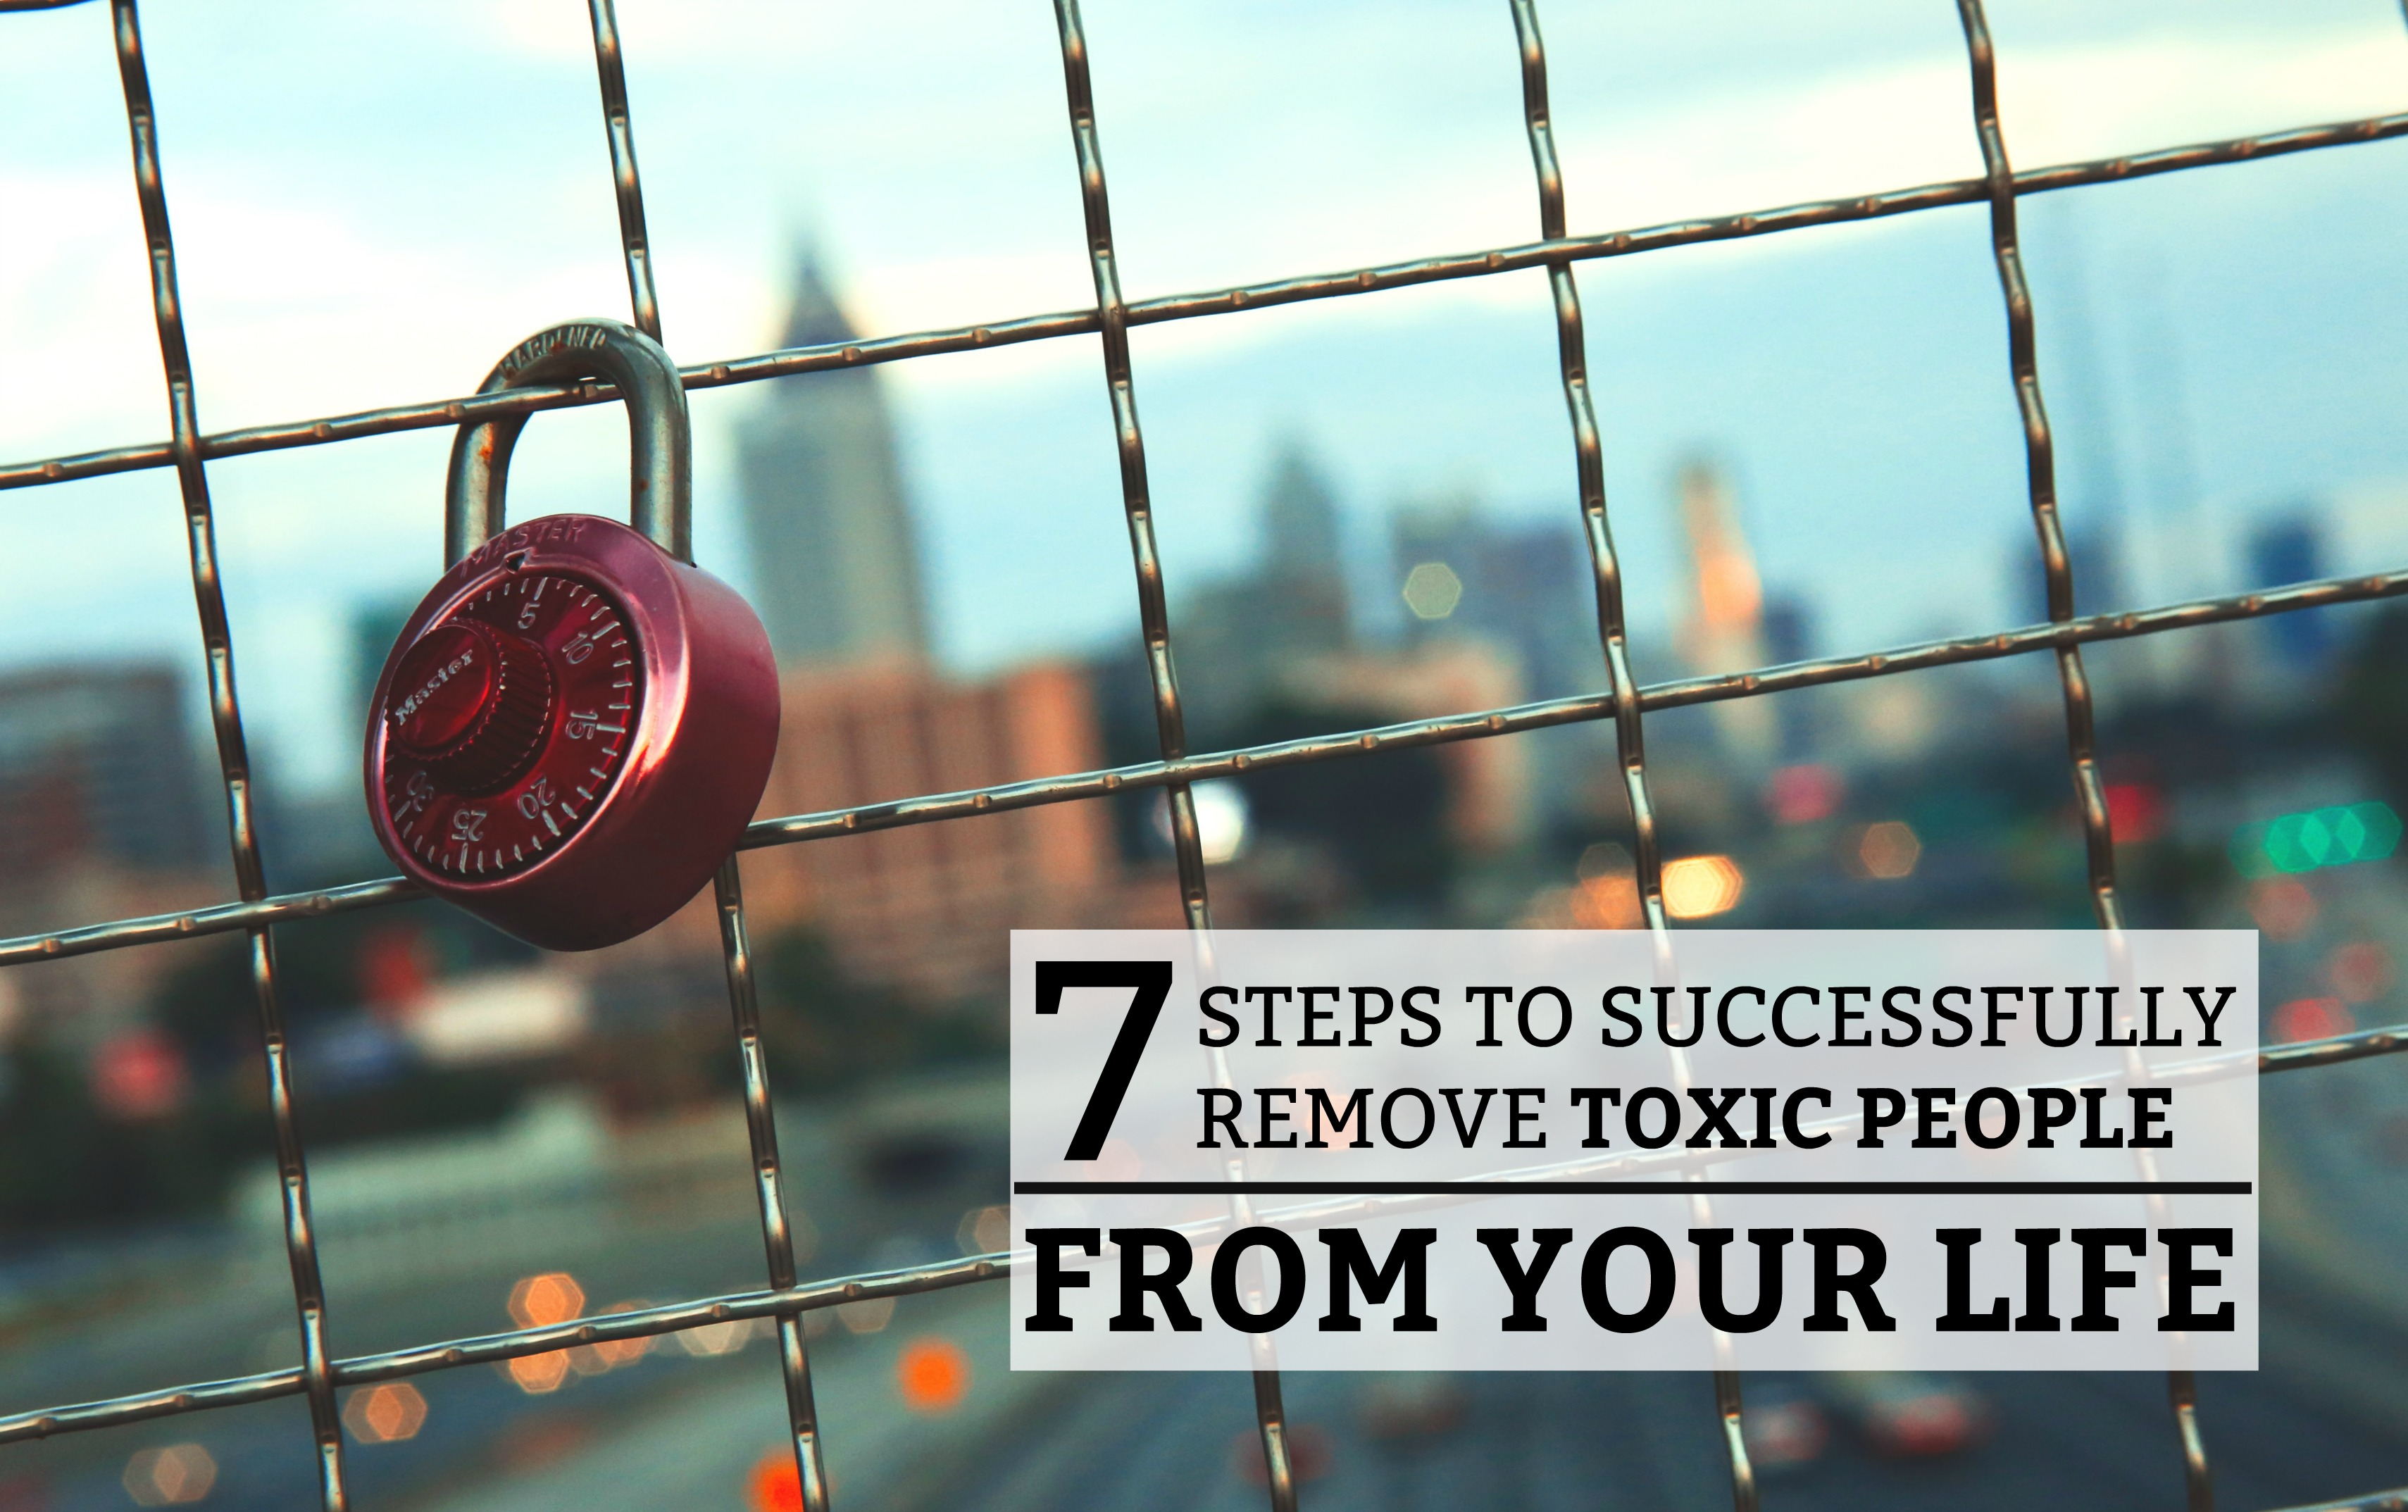 7 Steps to Successfully Remove Toxic People from Your Life - a step-by-step guide on how to eliminate the toxic people form your life. www.tradingaverage.com